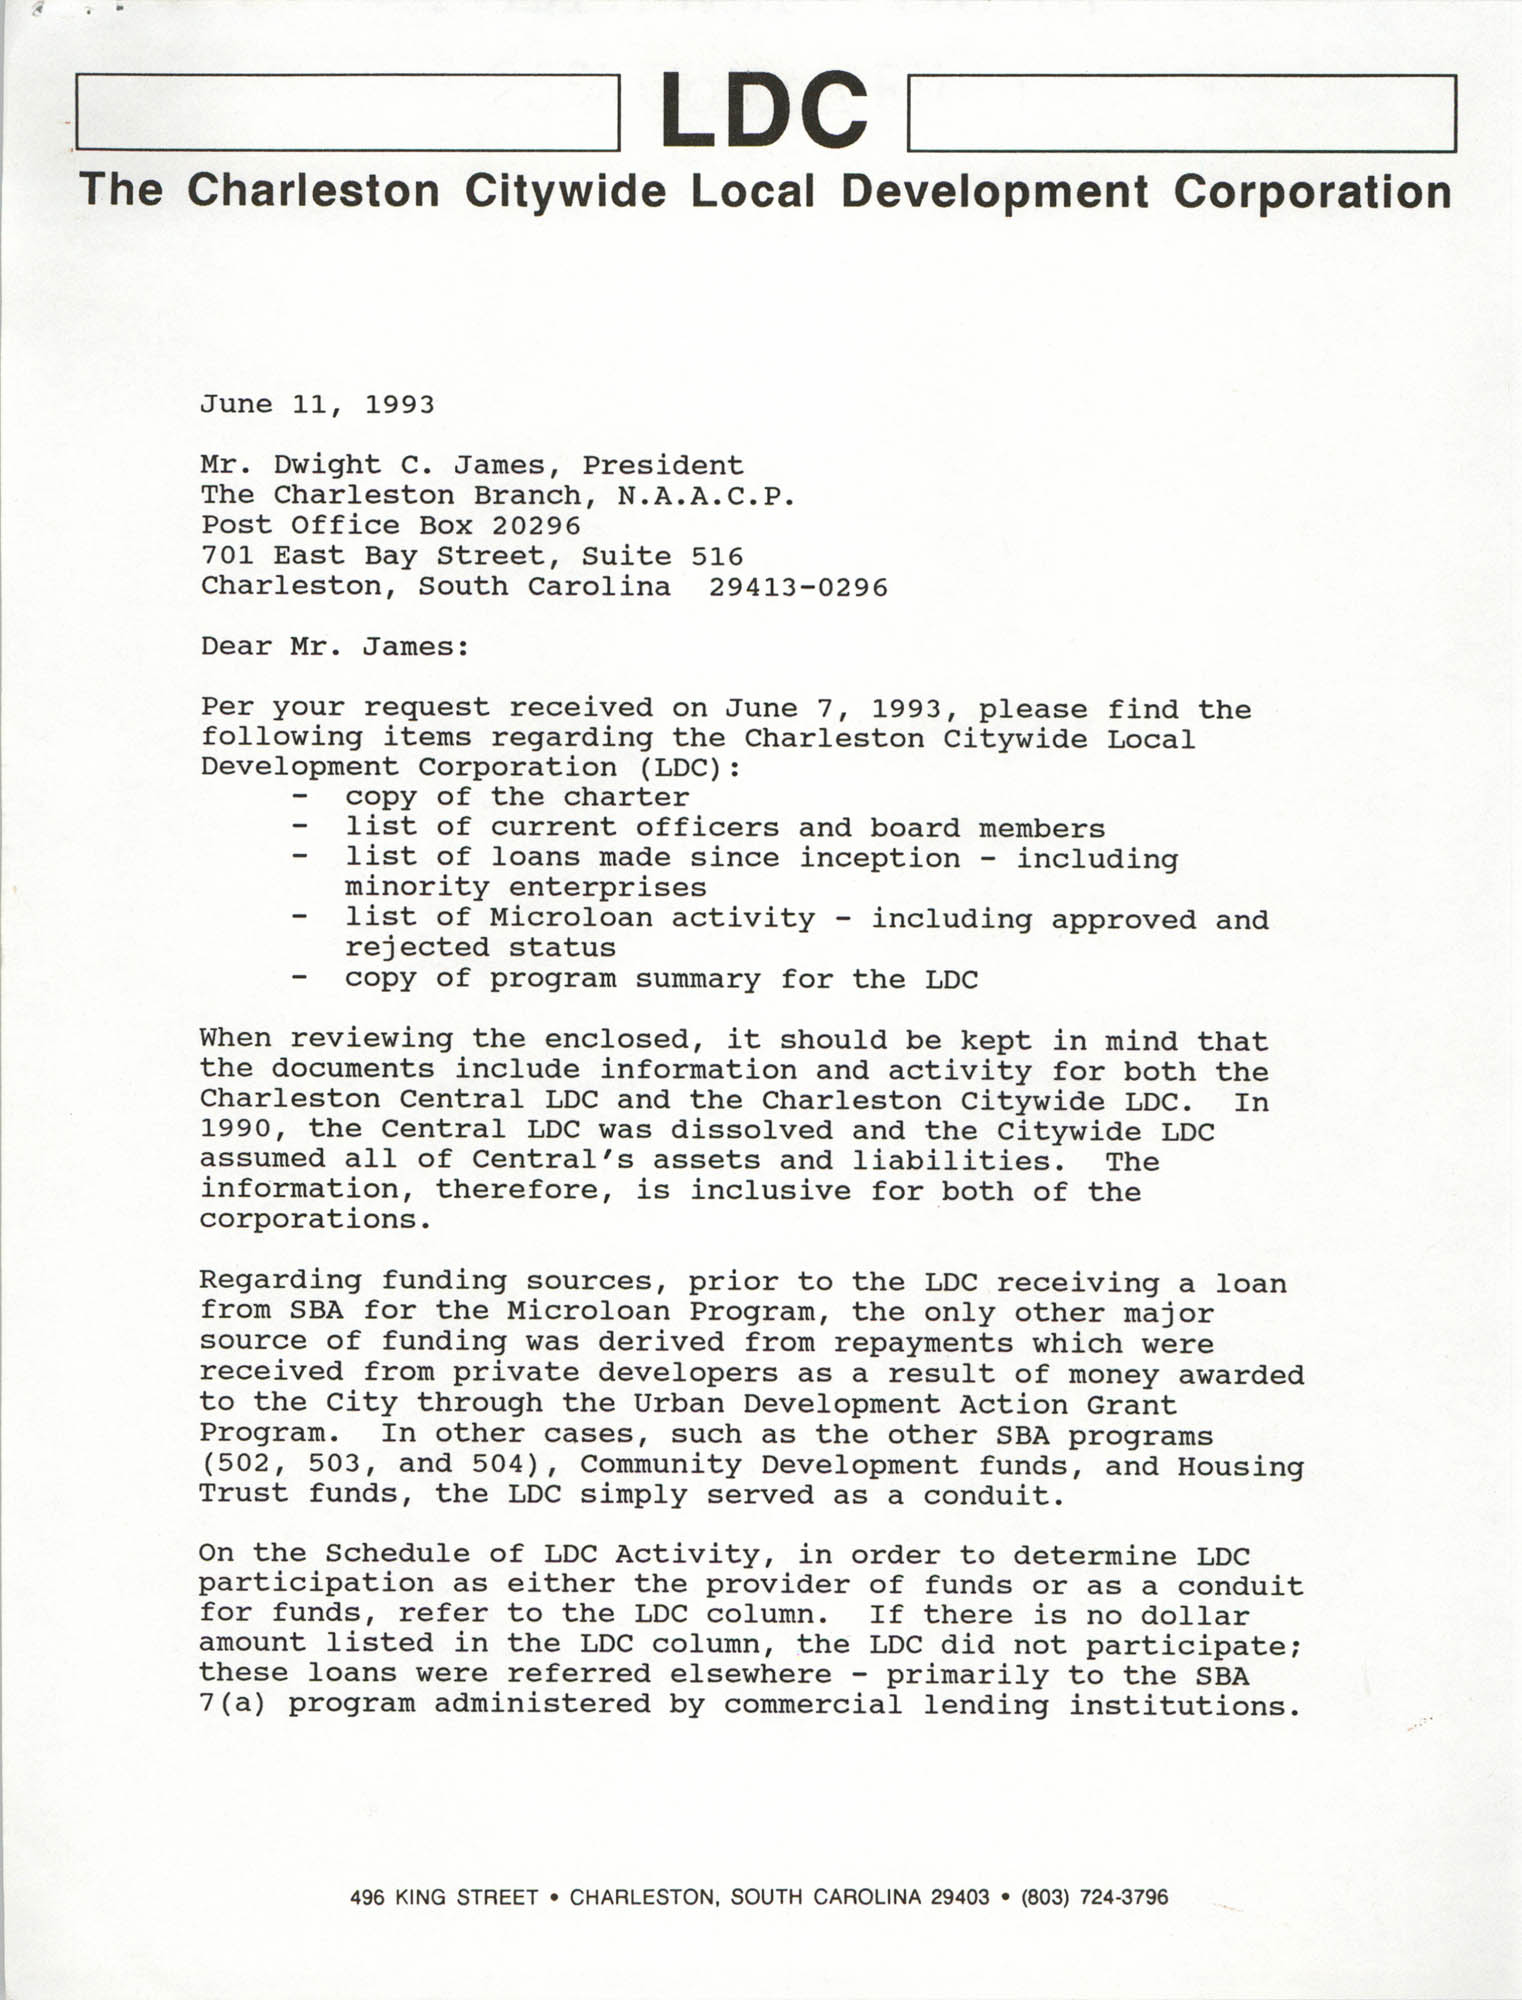 The Charleston Citywide Local Development Corporation Documents, June 11, 1993